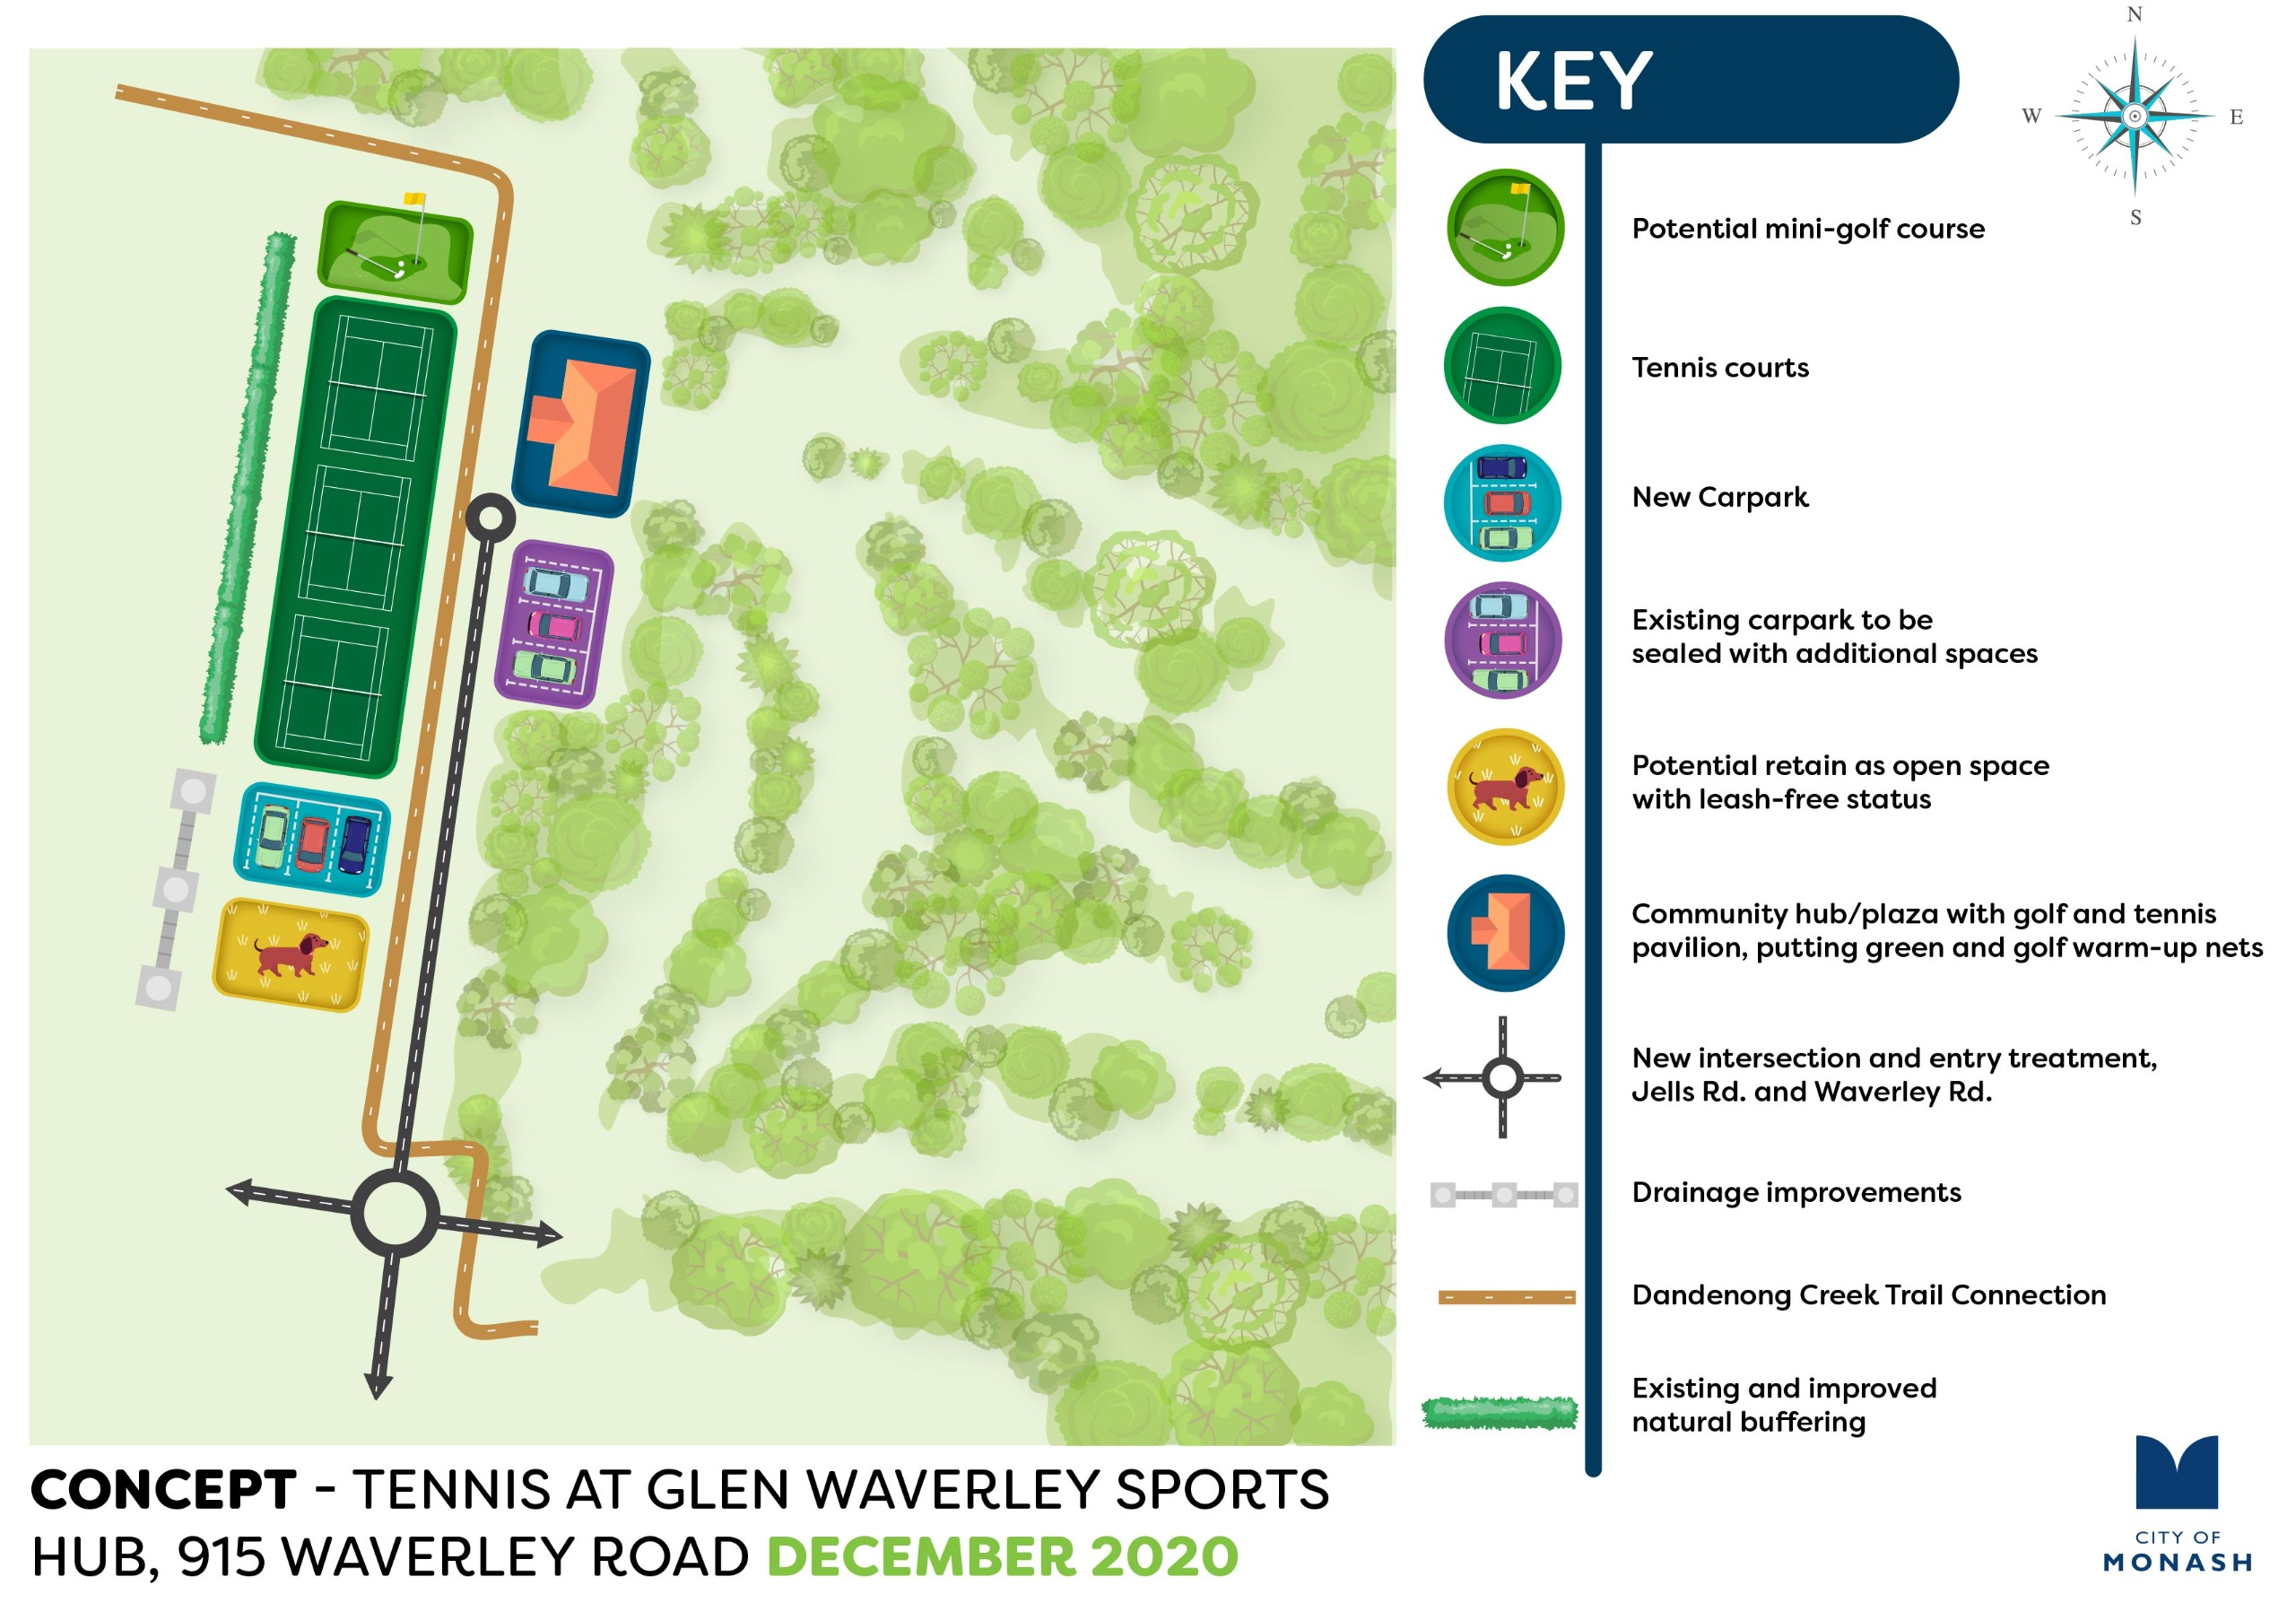 concept map of the new tennis facility